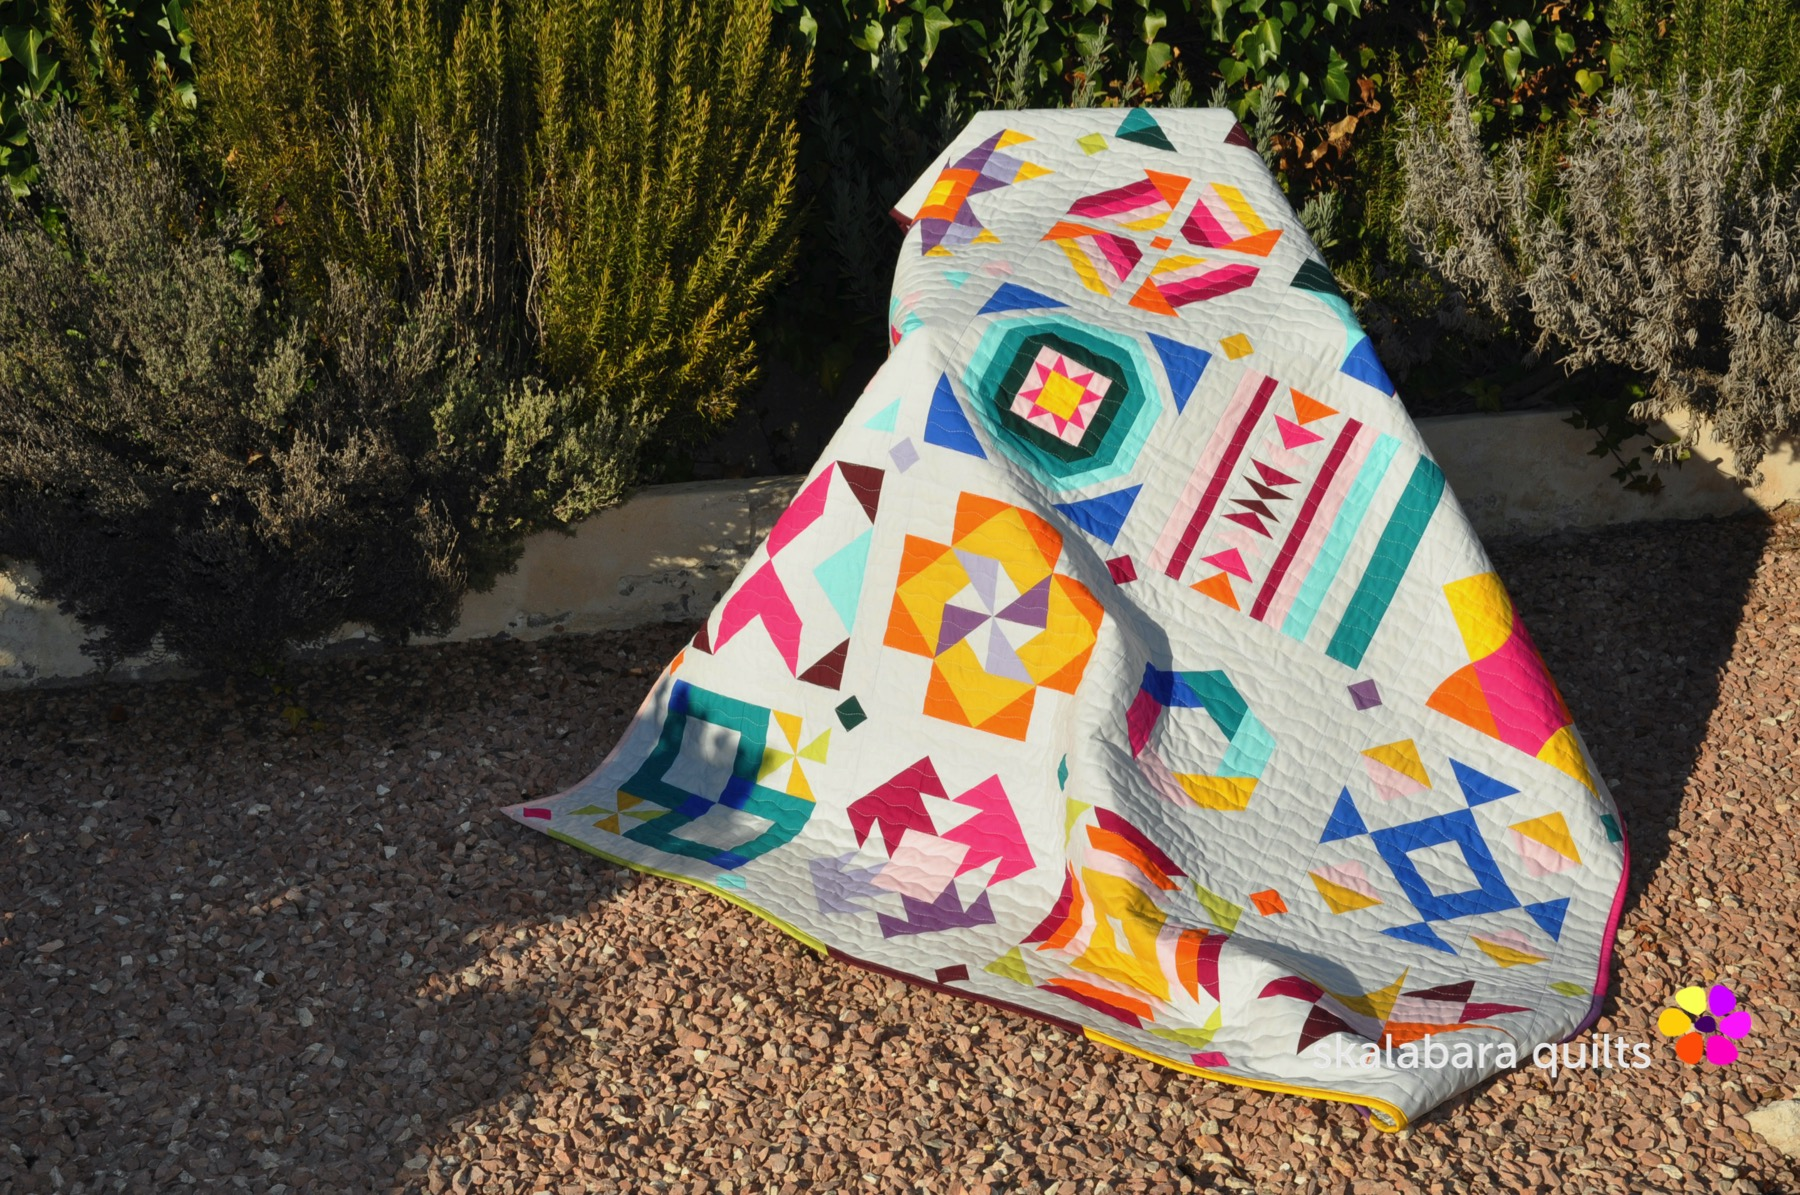 21 summer sampler 2020 4 - skalabara quilts